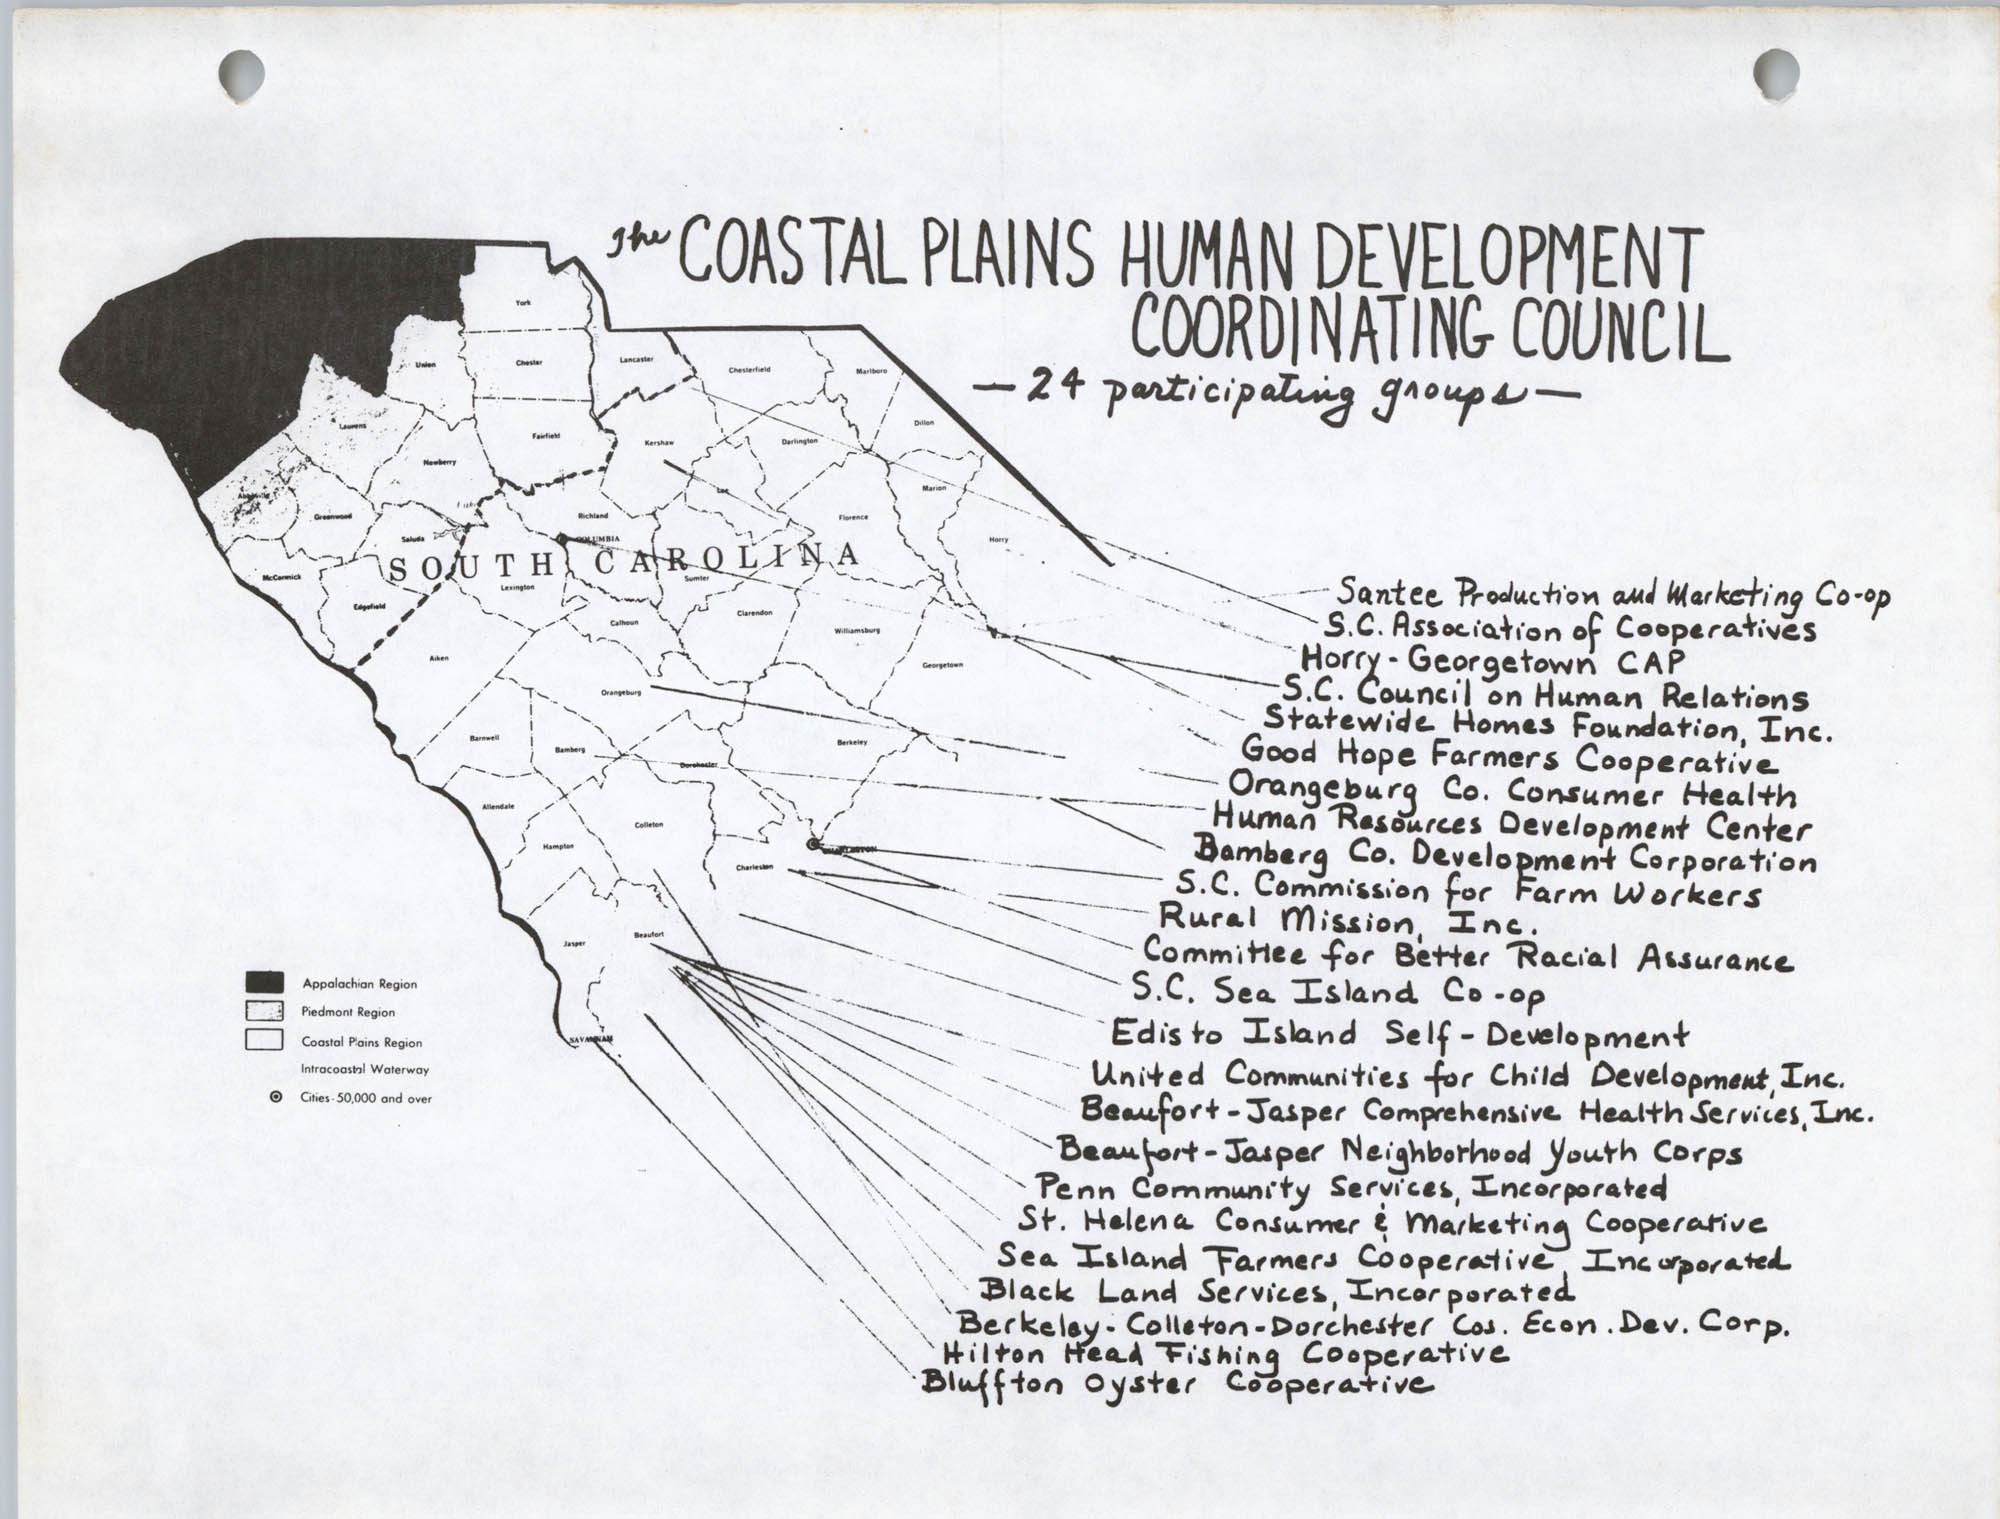 Coastal Plains Human Development Coordinate Council, S. C. Map